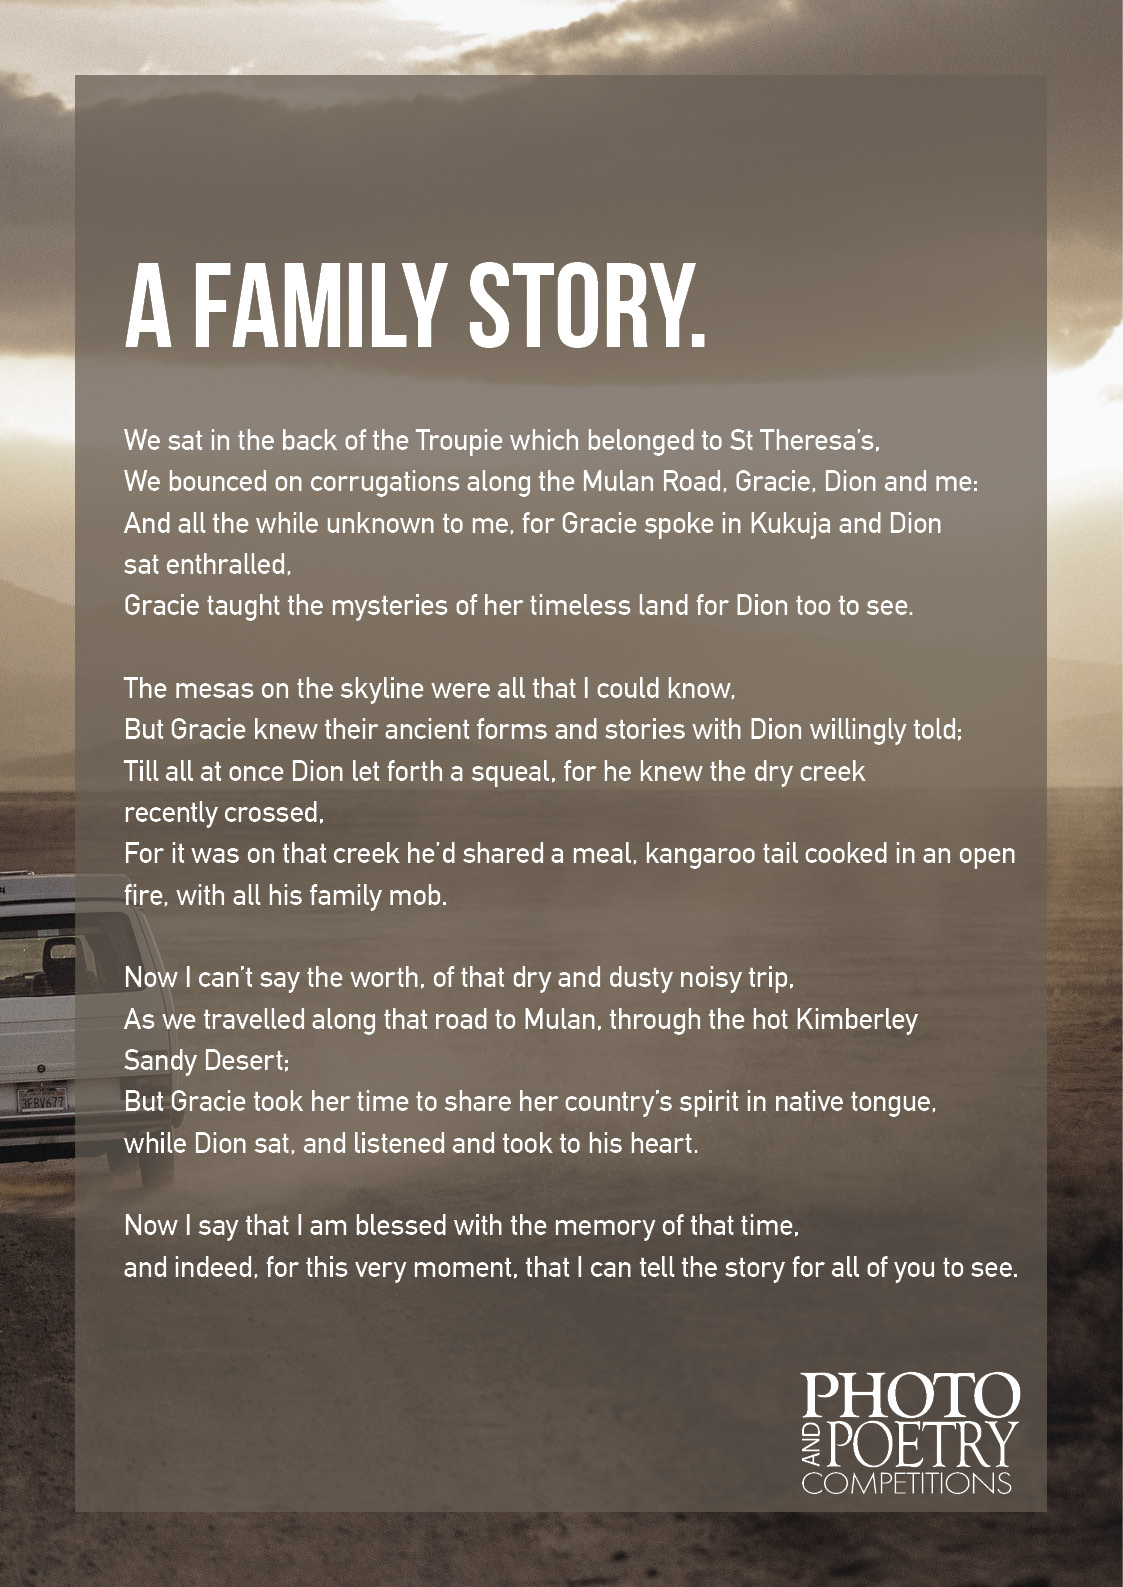 Lawrie Grant - A family story